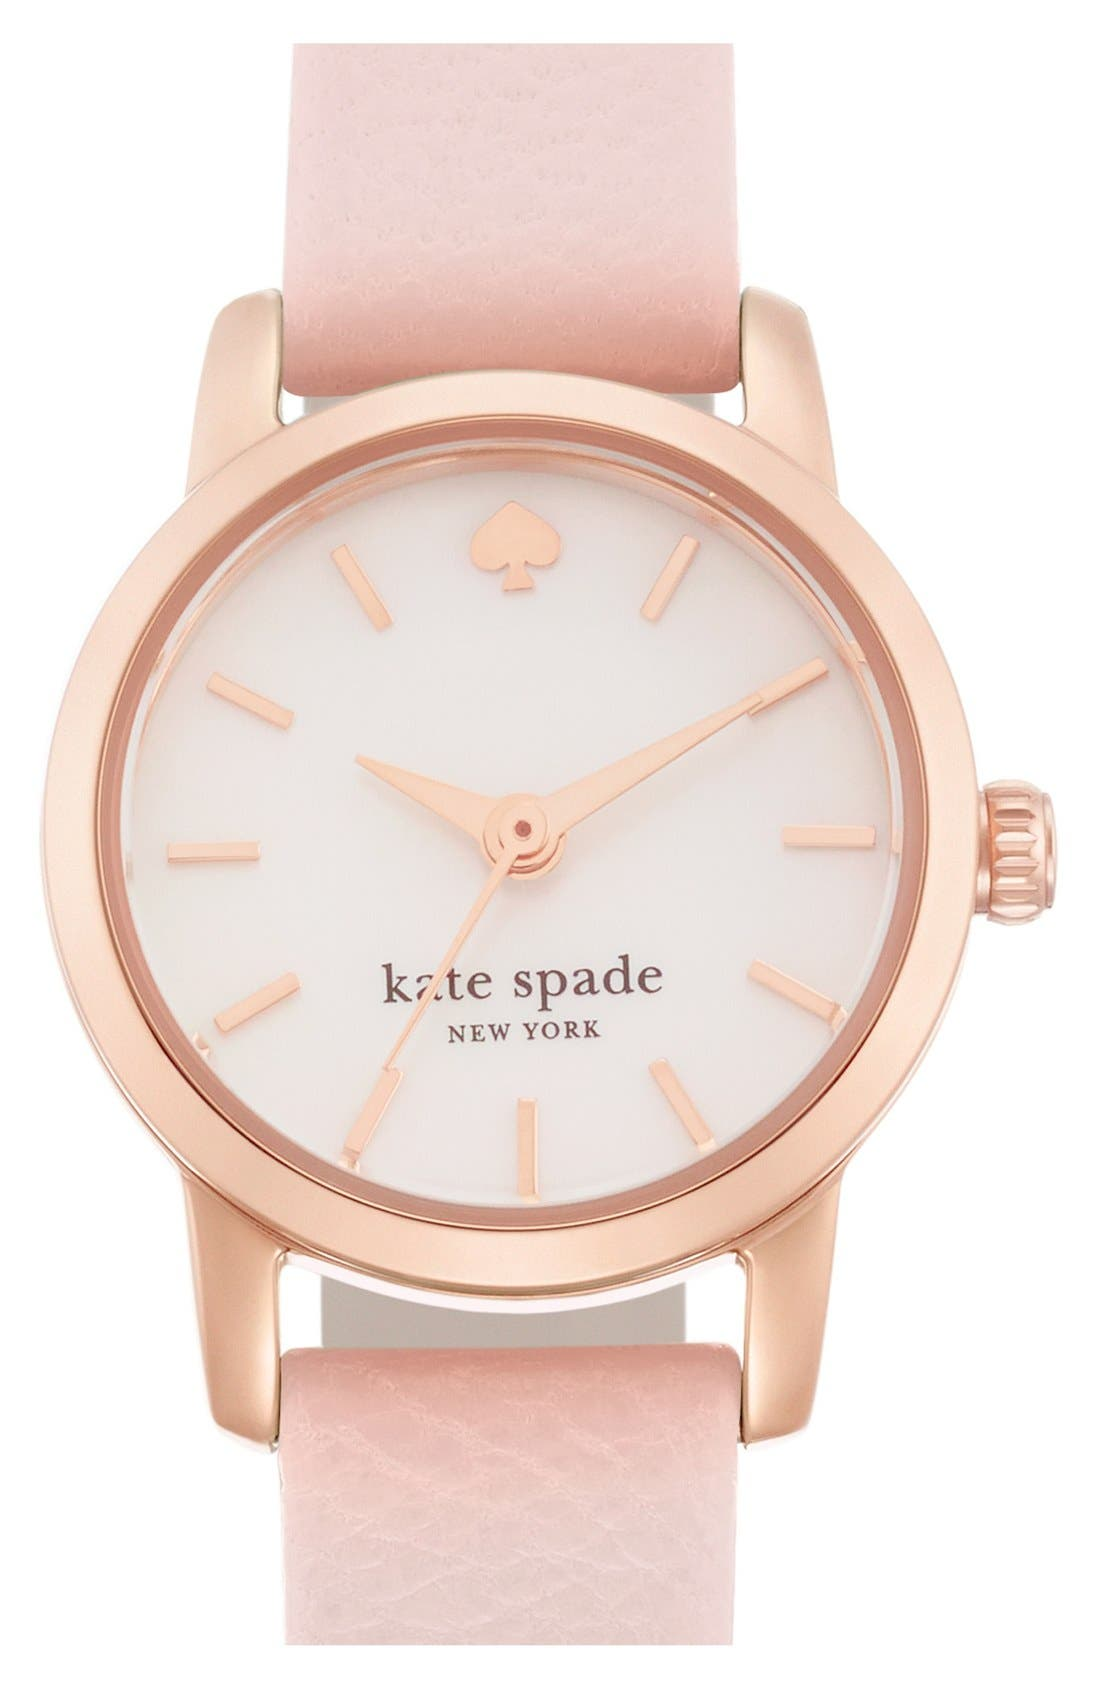 Main Image - kate spade new york 'tiny metro' leather strap watch, 20mm